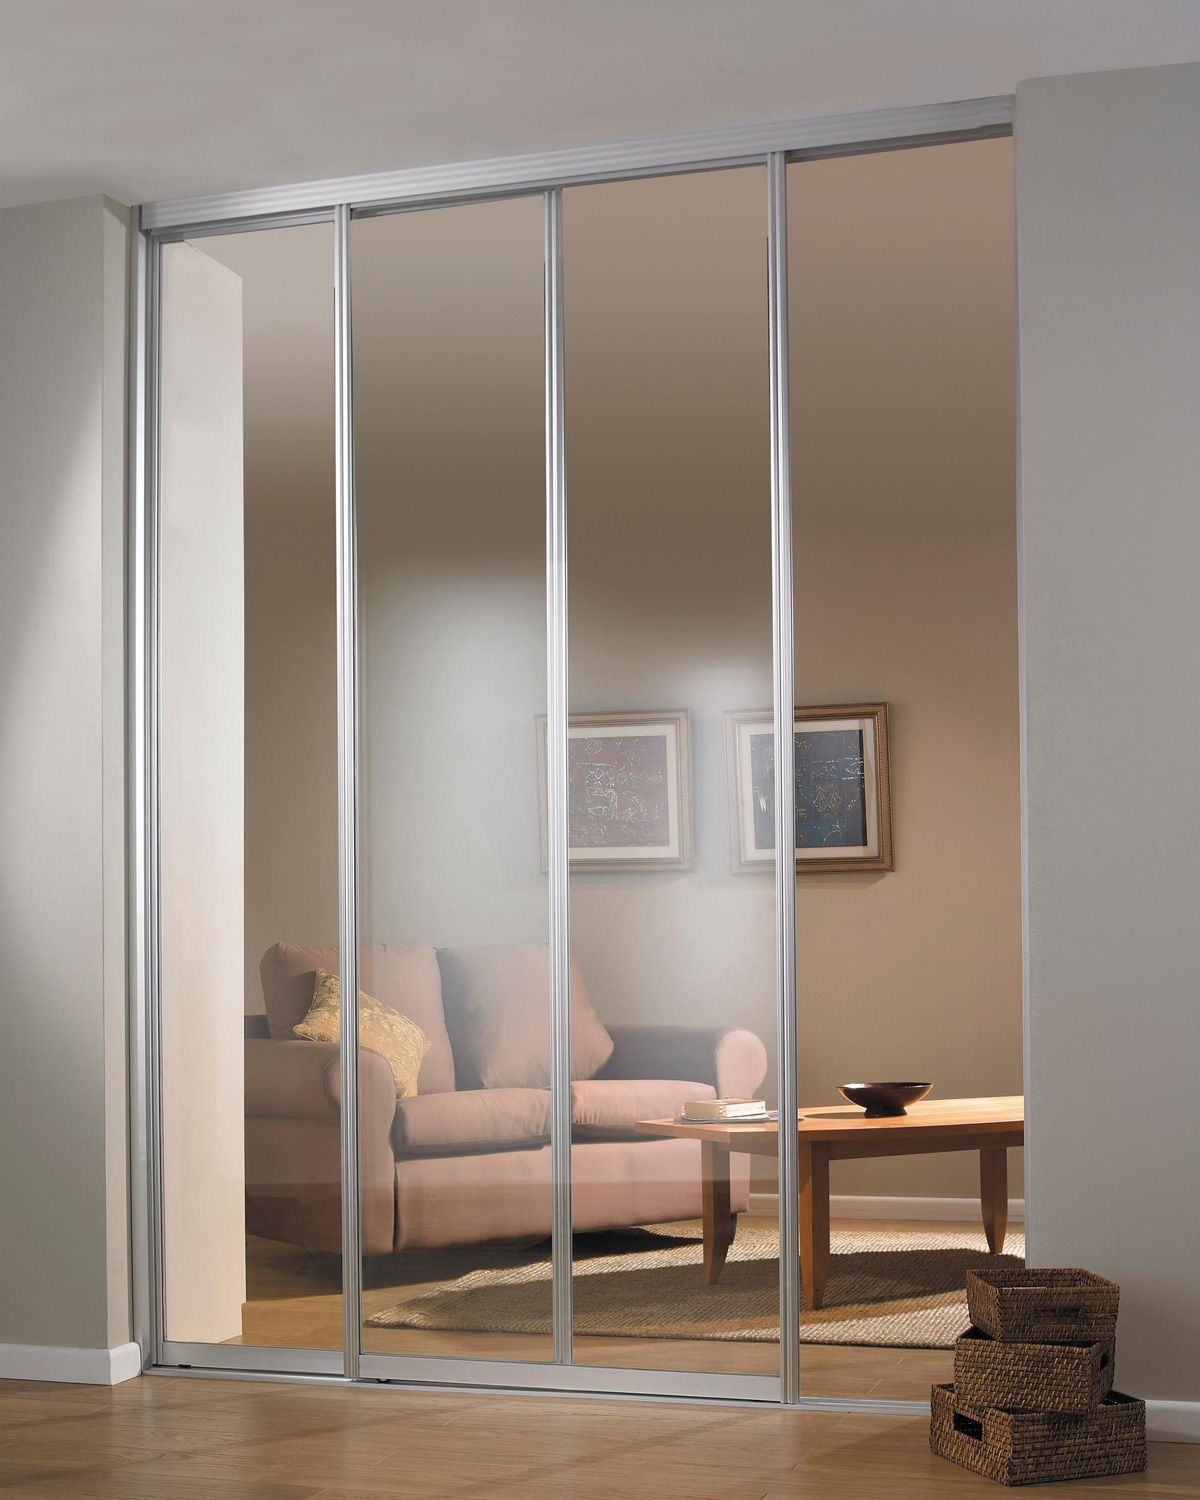 Glass Room Dividers Partitions modern style full lite clear glass in aluminium agreeable sliding